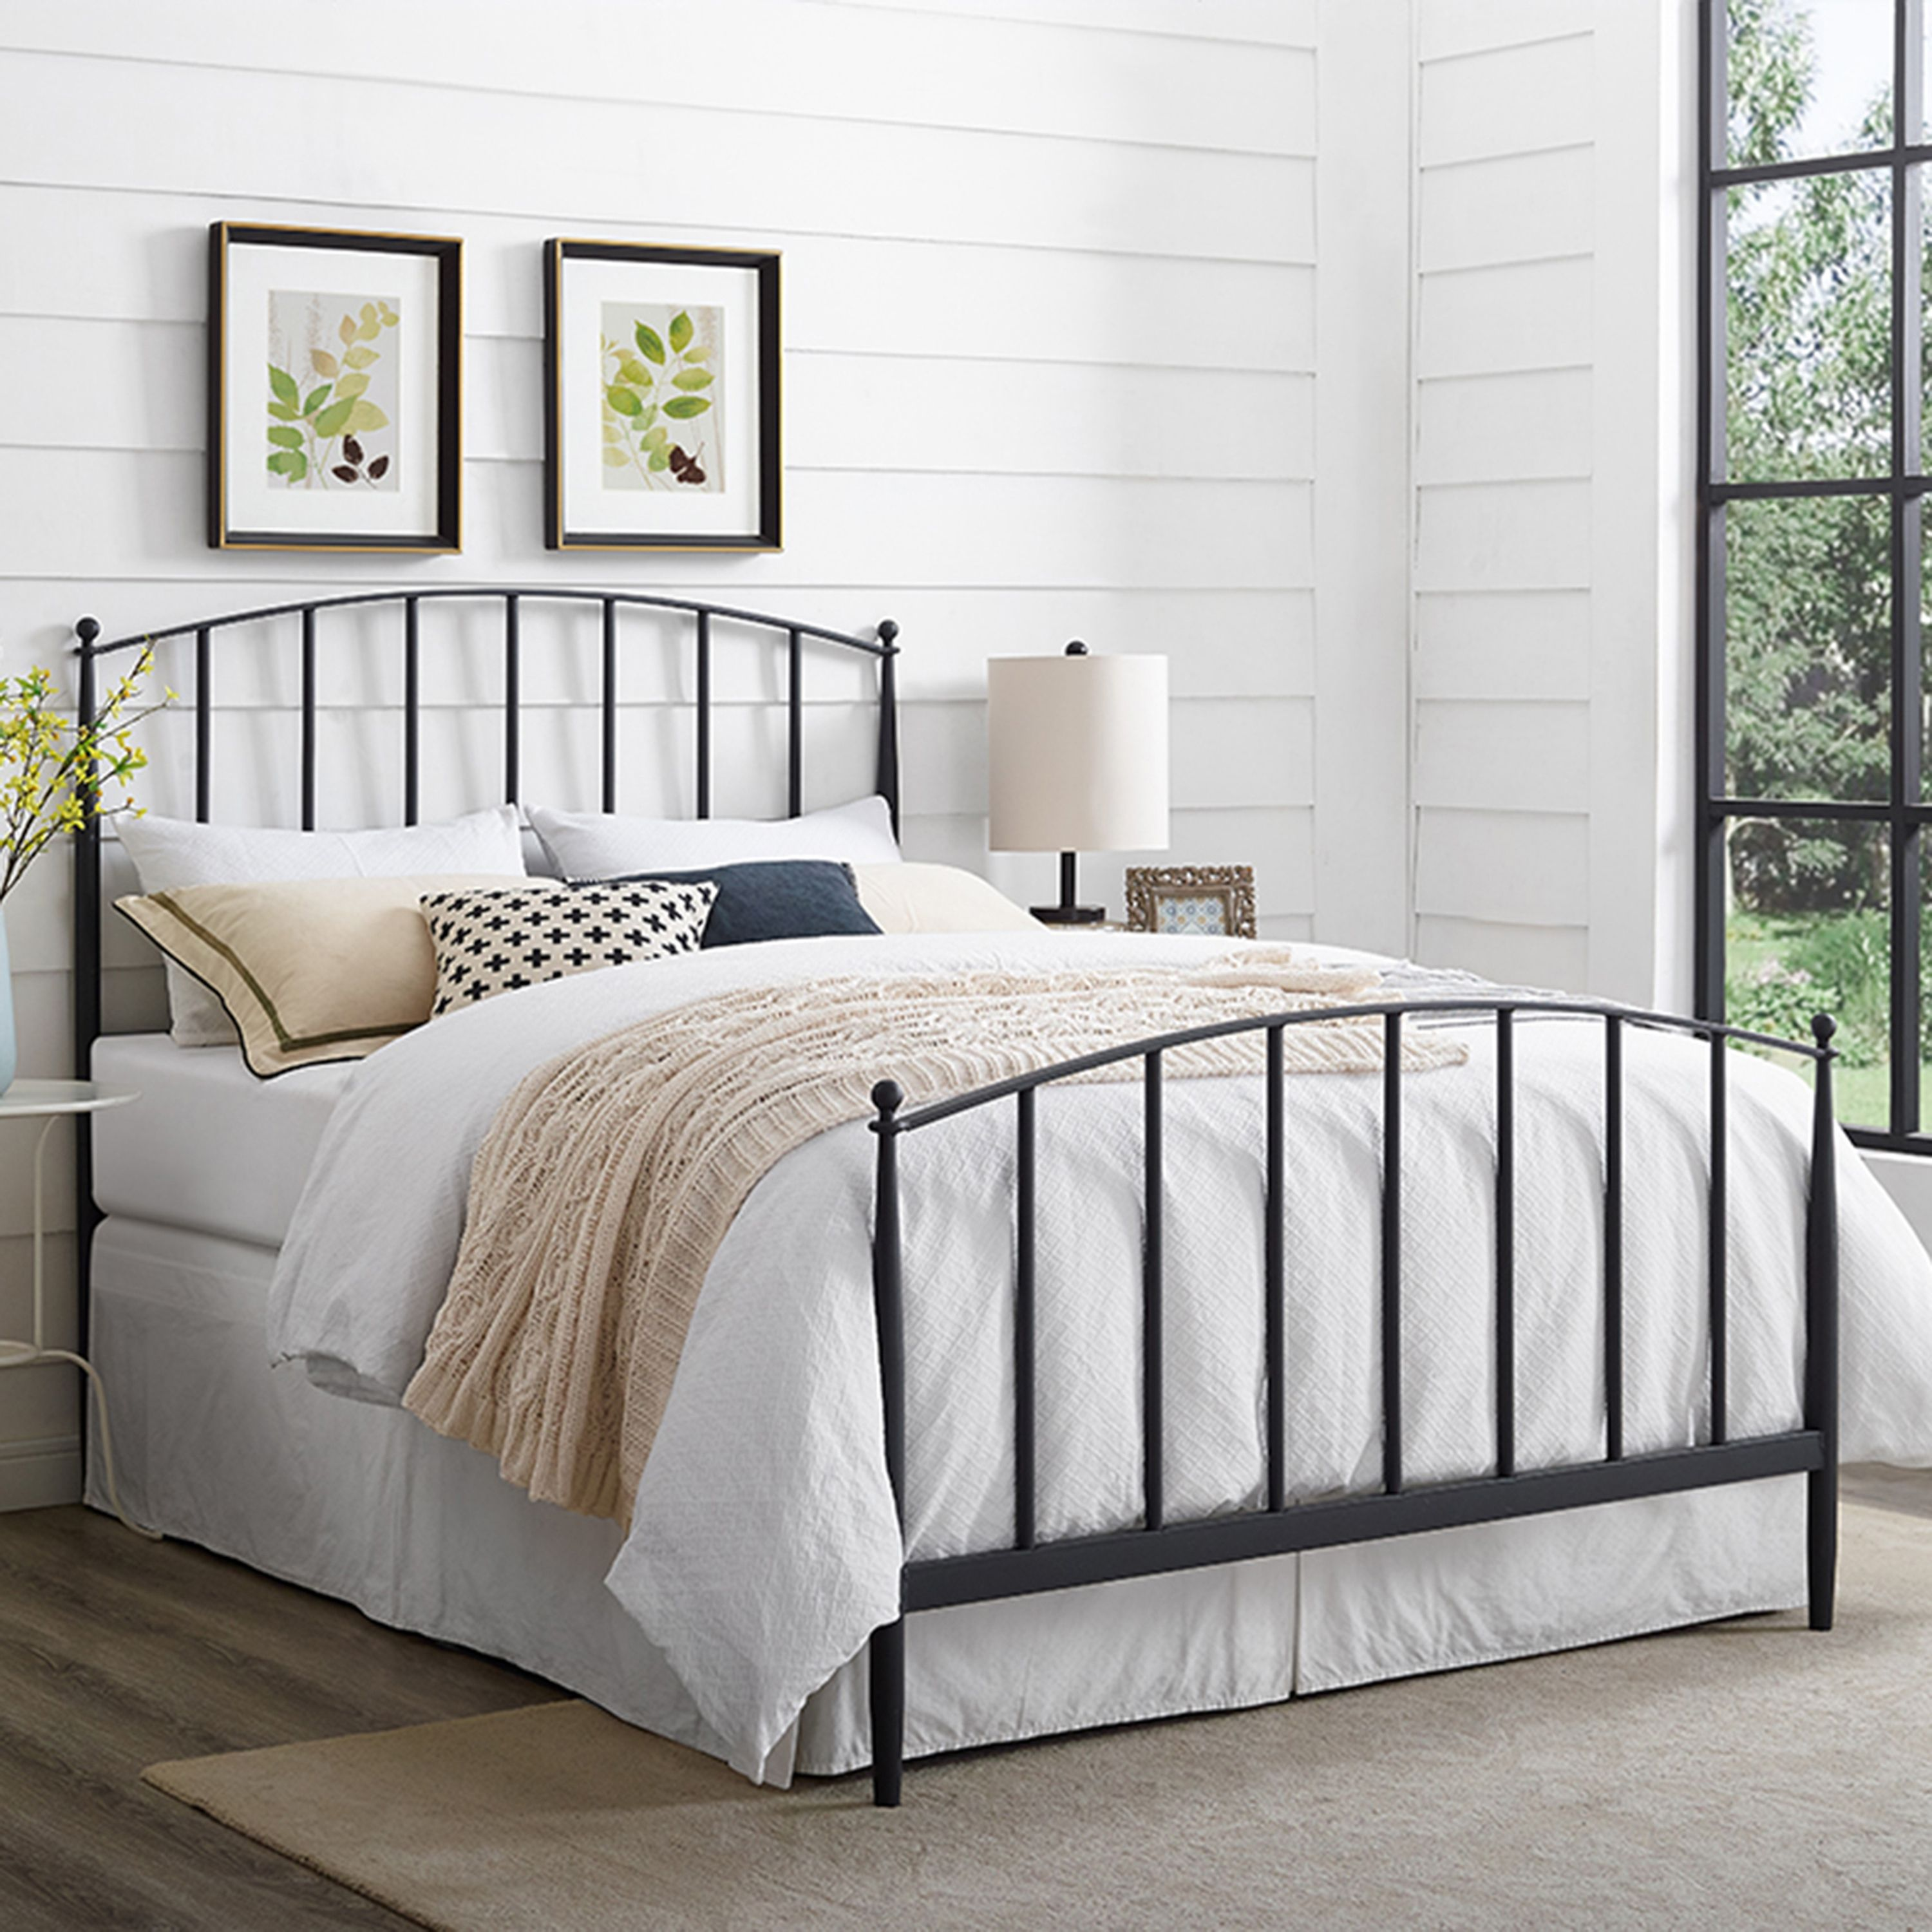 Pin On Products Metal headboard and footboard queen